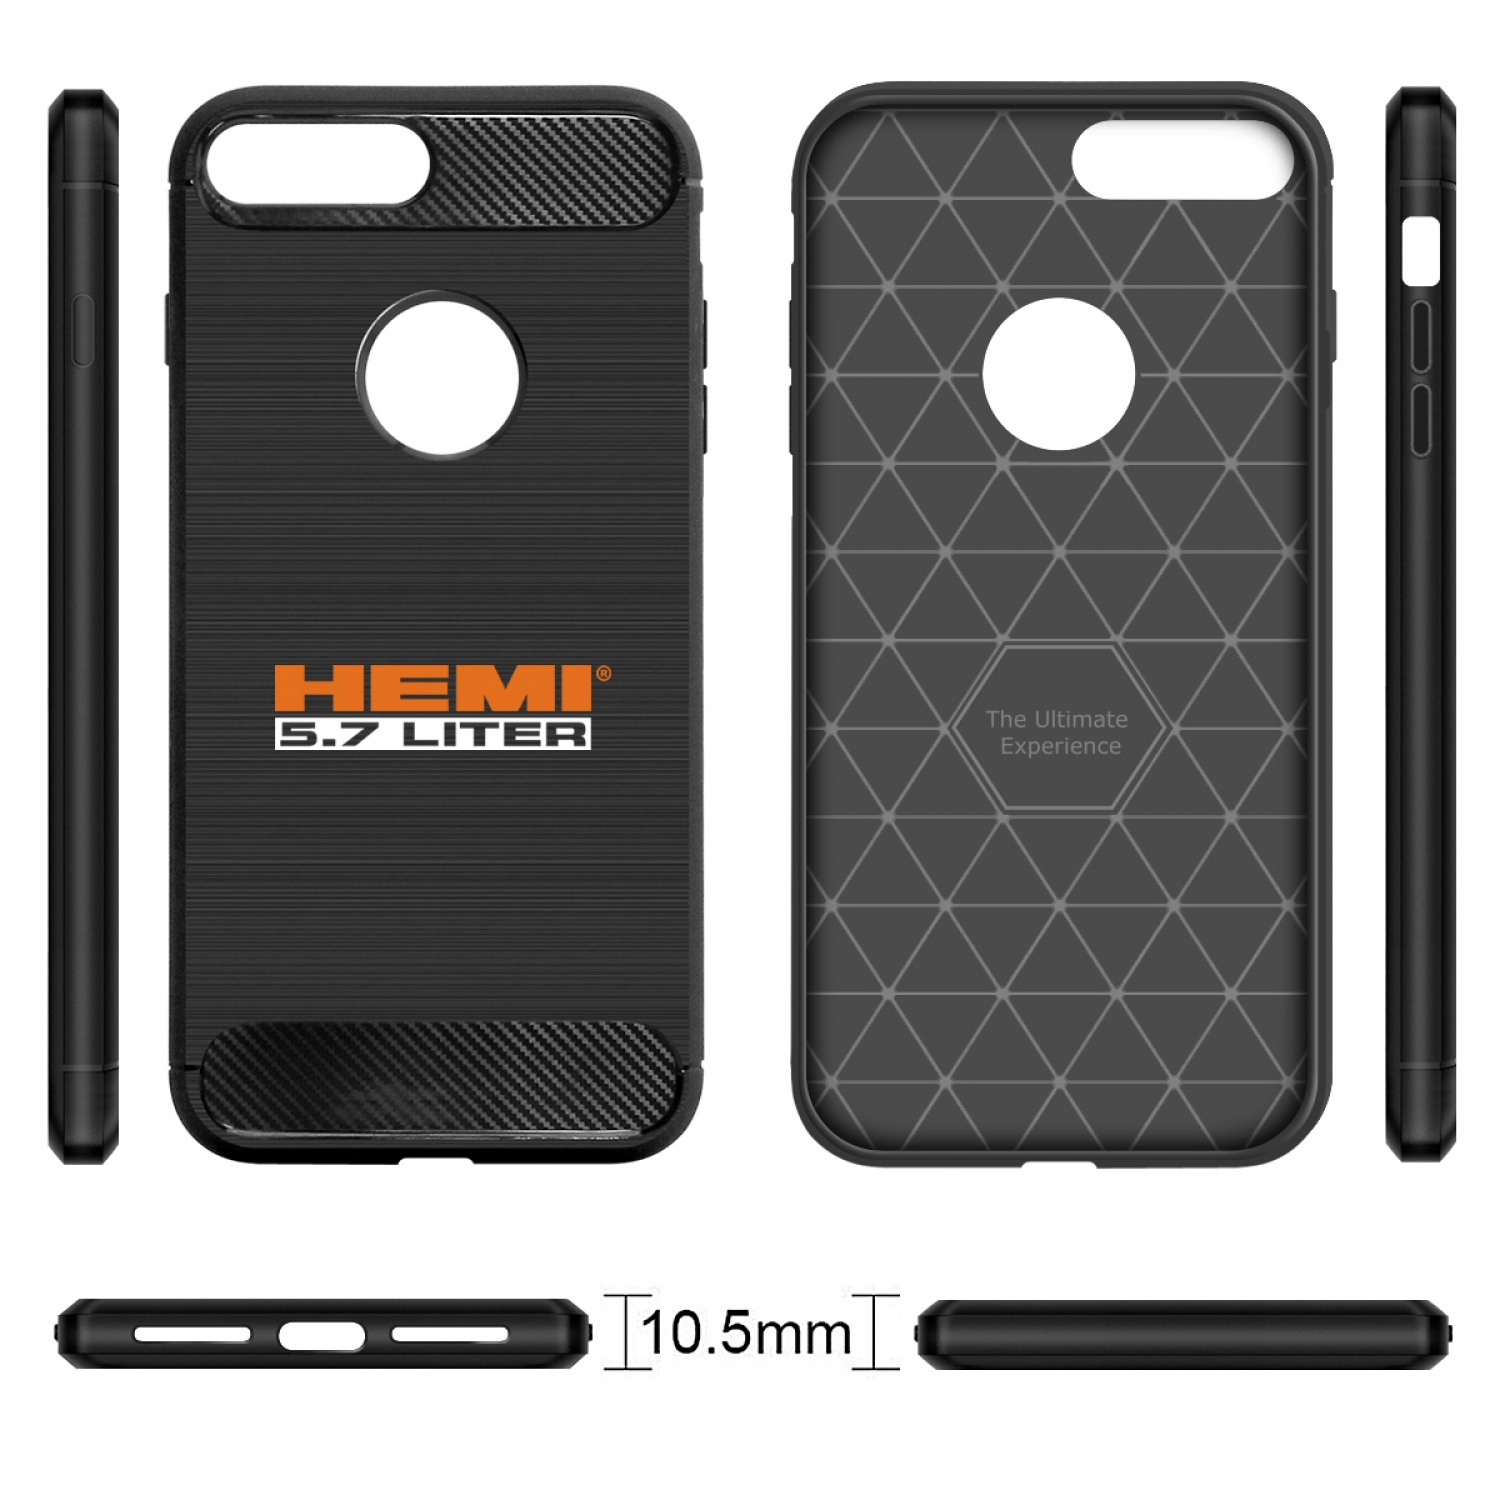 iPhone 7 Plus Case, HEMI 5.7 Liter Black TPU Shockproof Carbon Fiber Textures Cell Phone Case